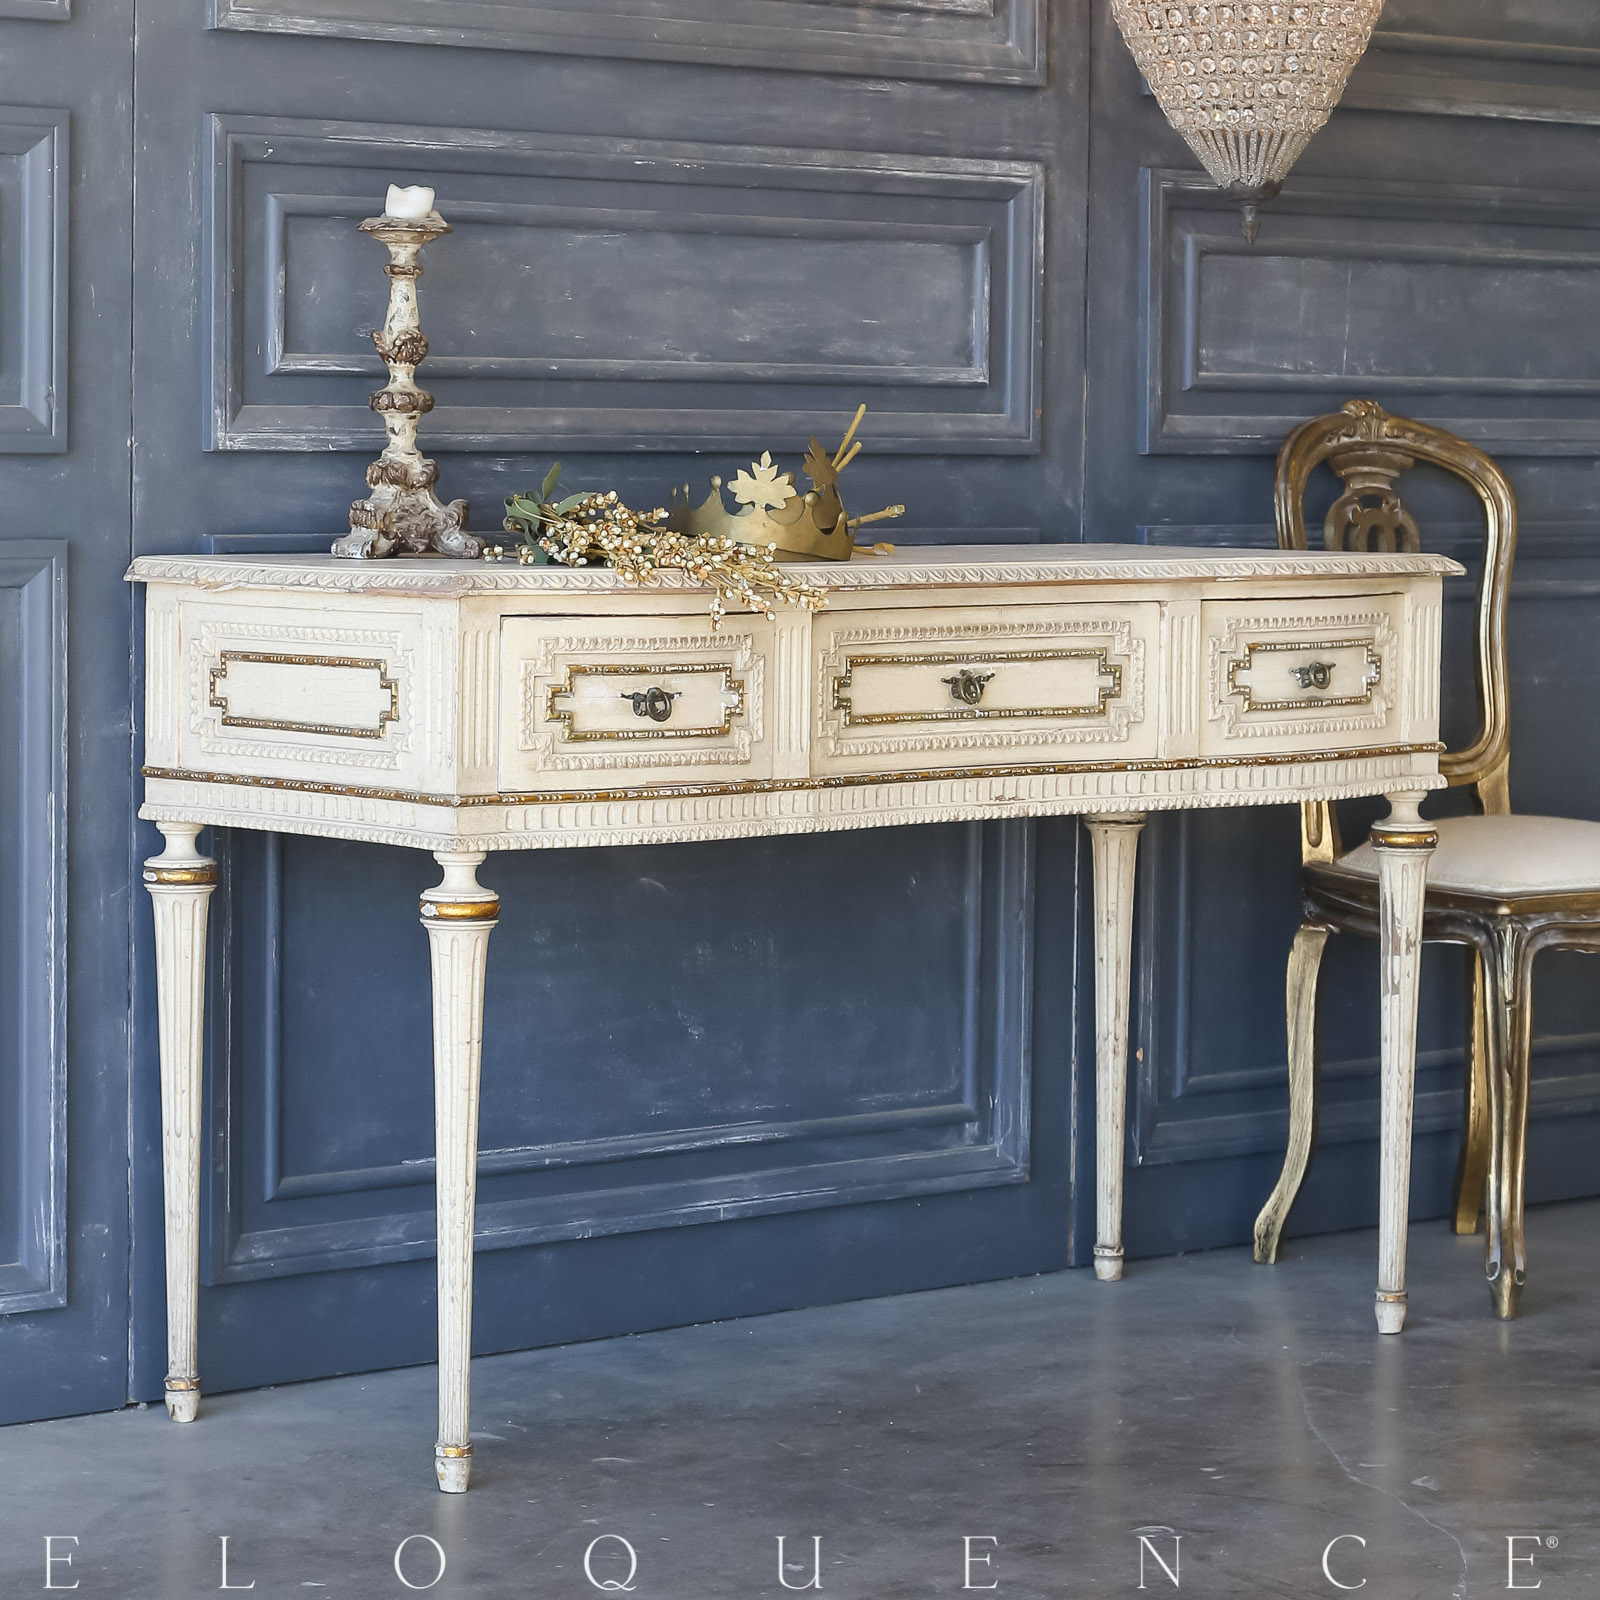 Eloquence® Vintage Gilt Apricot Vanity: 1940